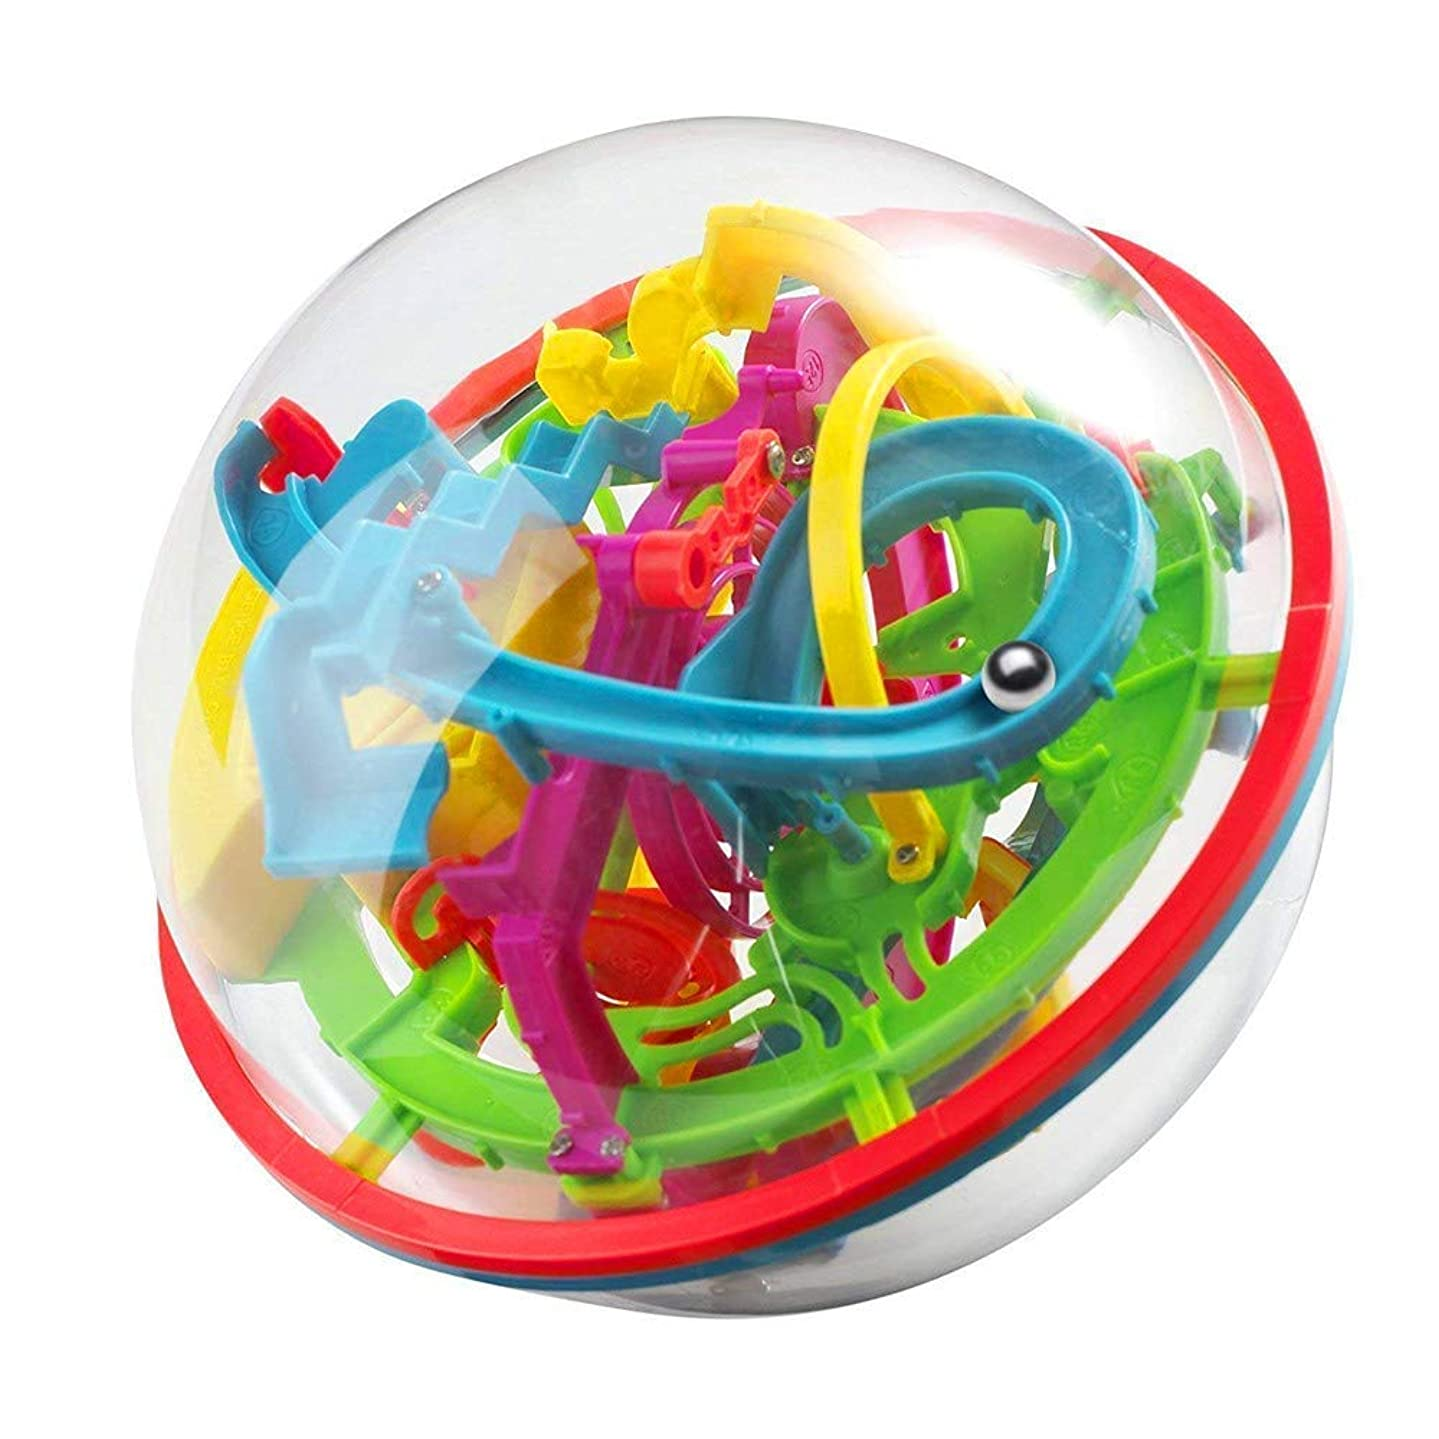 Maze Ball Game 3D Intellect Ball with 100 Challenging Barriers 3D Labyrinth Ball for Kids 3D Puzzle Toy Magical Maze Ball Brain Teasers Puzzle